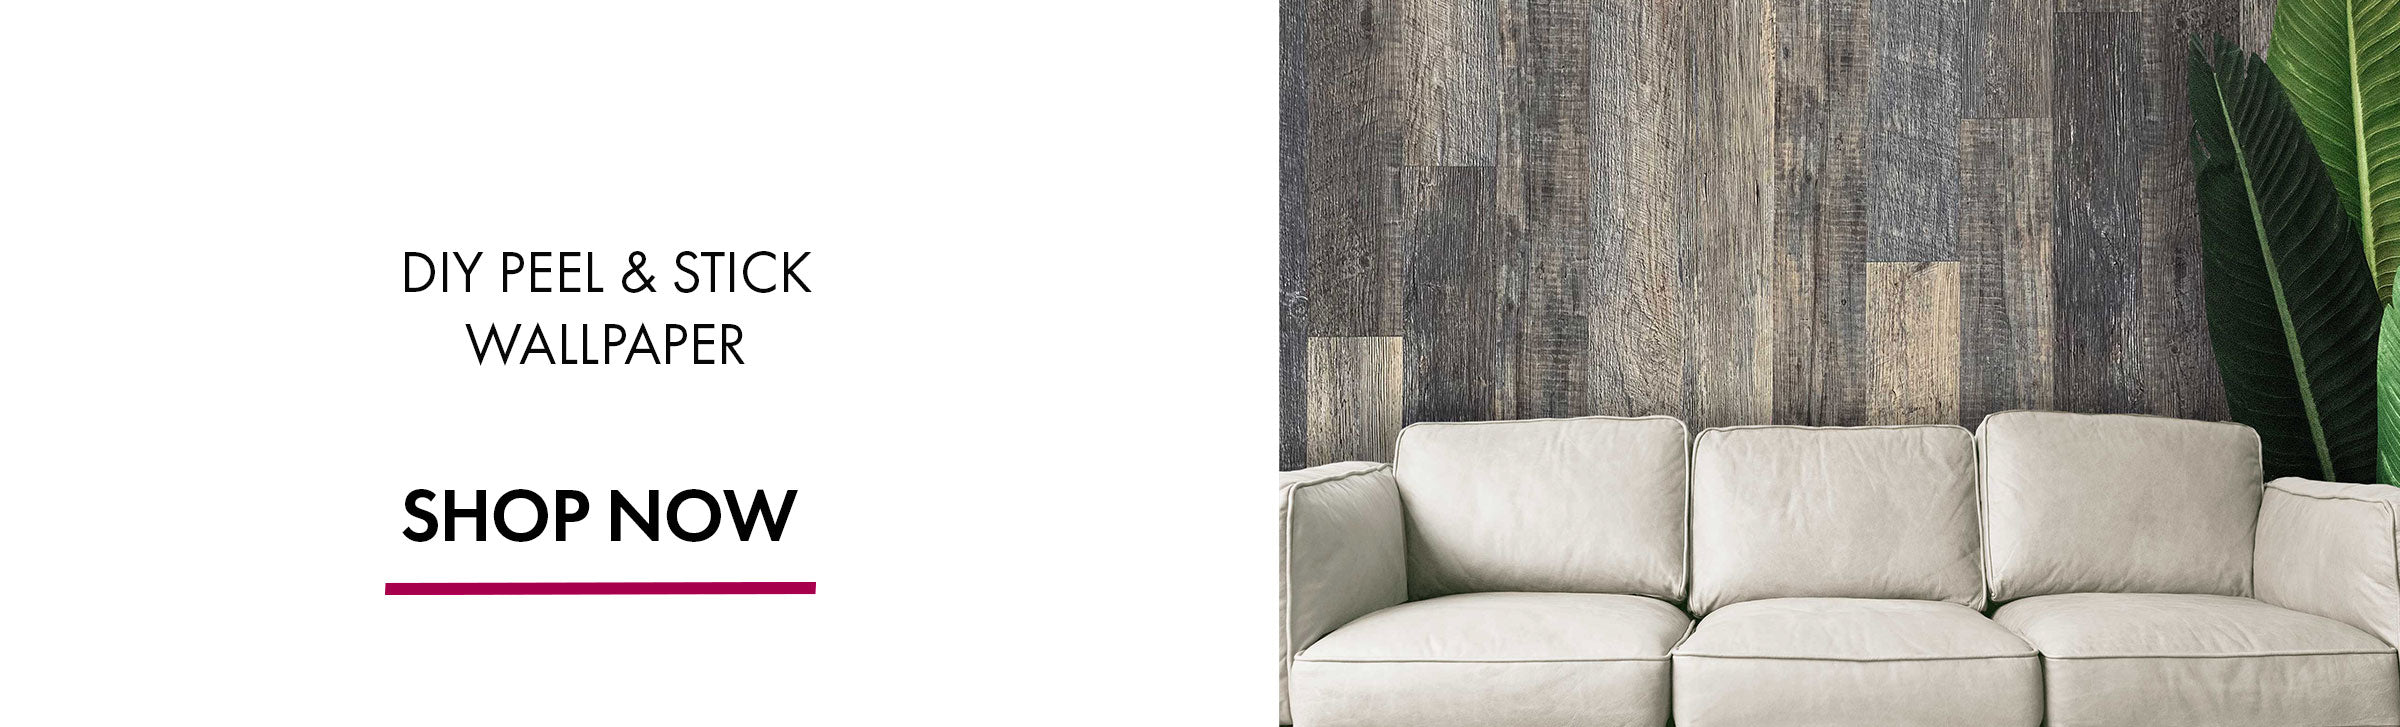 dip design is personal diy peel and stick wall planks